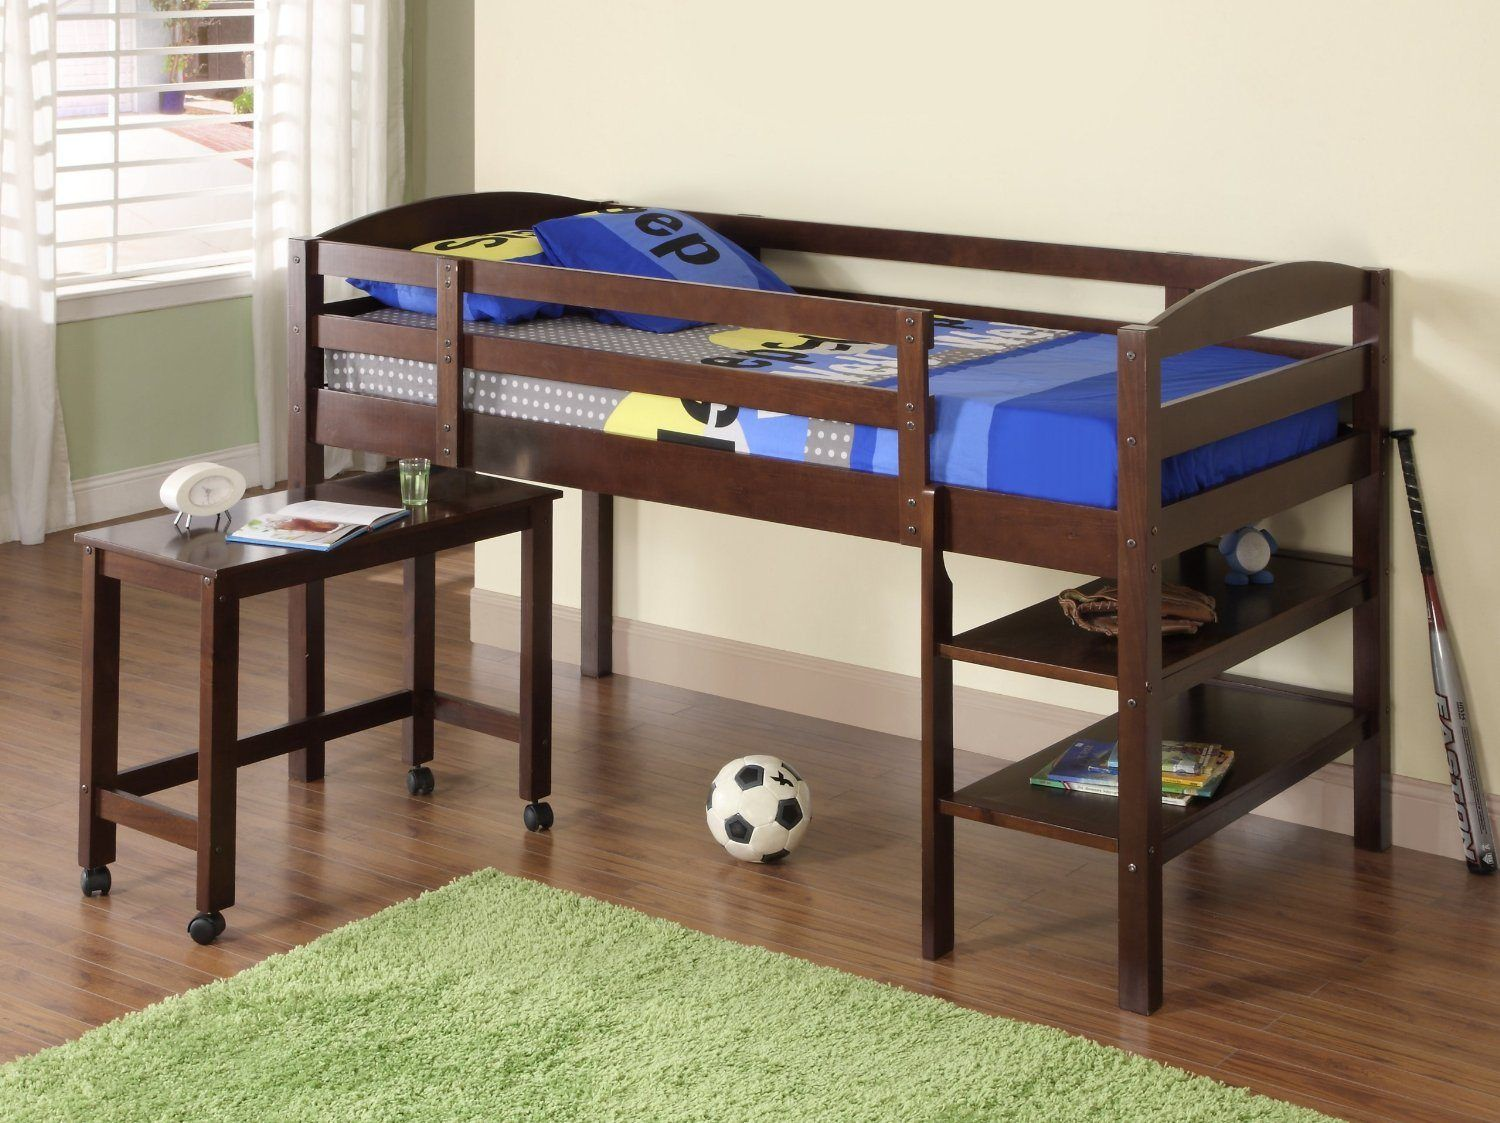 Wooden loft bed with desk   Terrific Loft Beds For Kids With Desk Image Ideas  For the Home